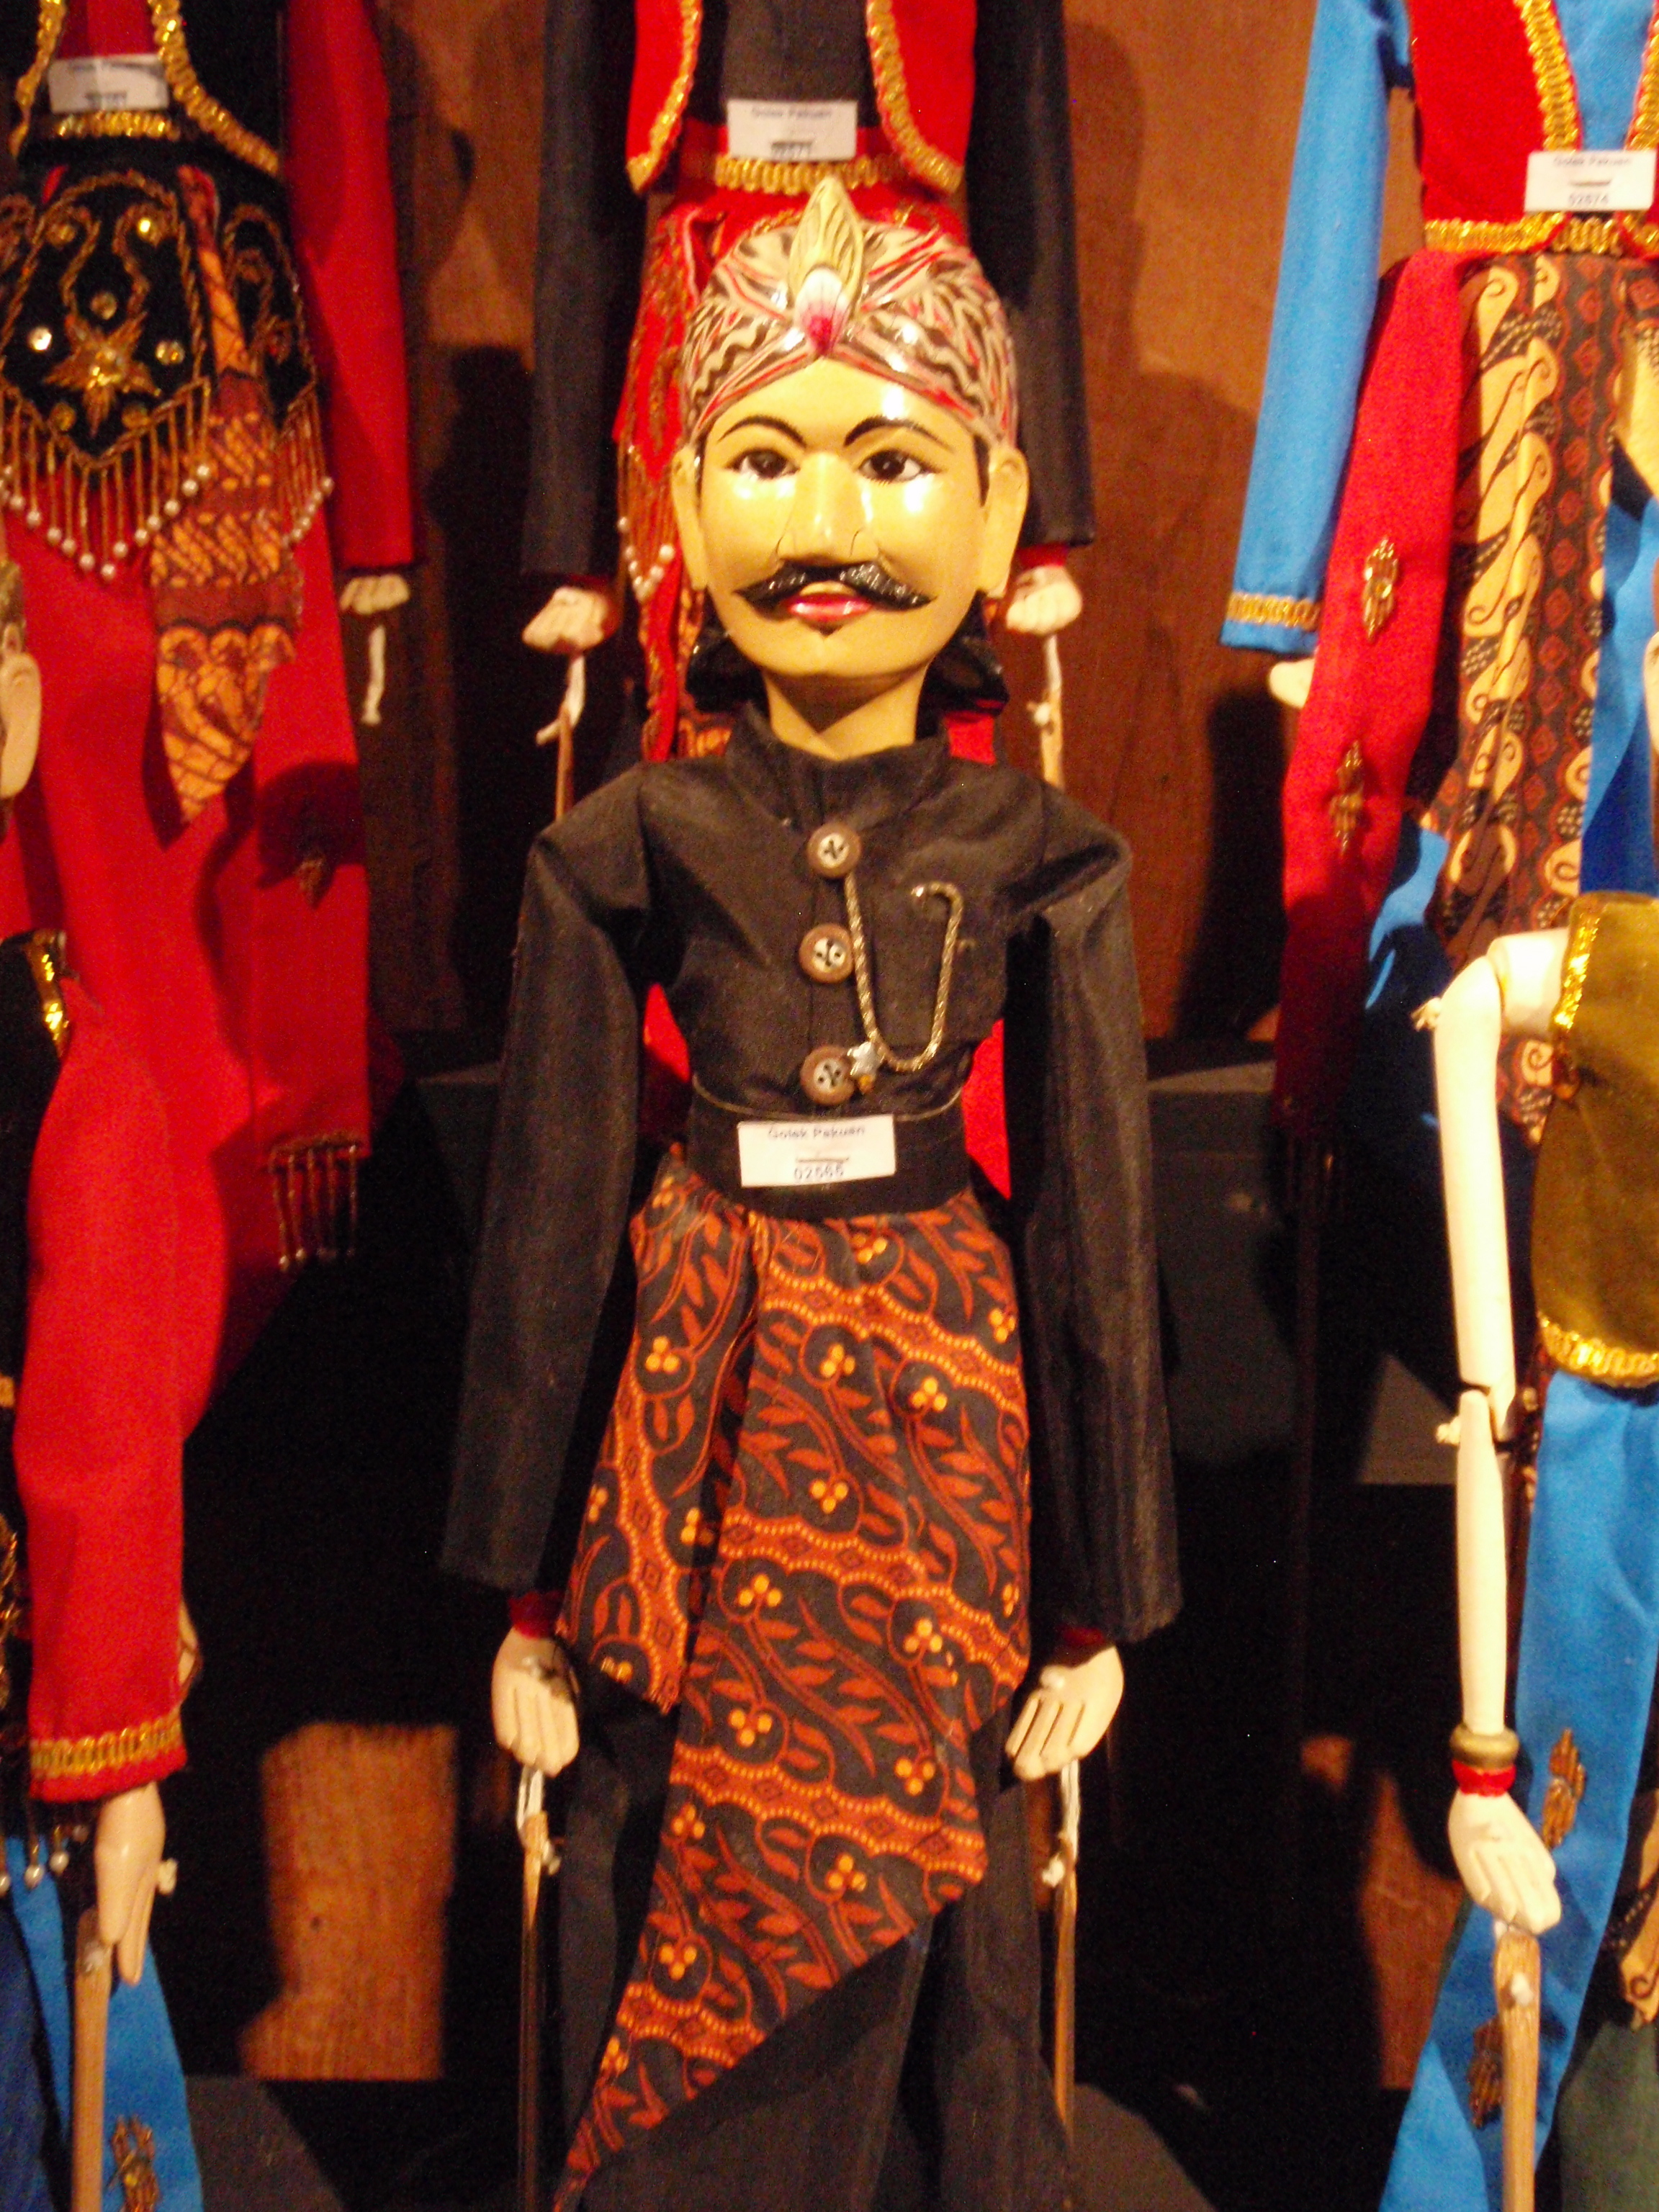 Un homme noble, wayang golek pakuan (Java occidental). Marionnette à tiges. Collection : Setia Darma House of Masks and Puppets, Gianyar, Bali, Indonésie.